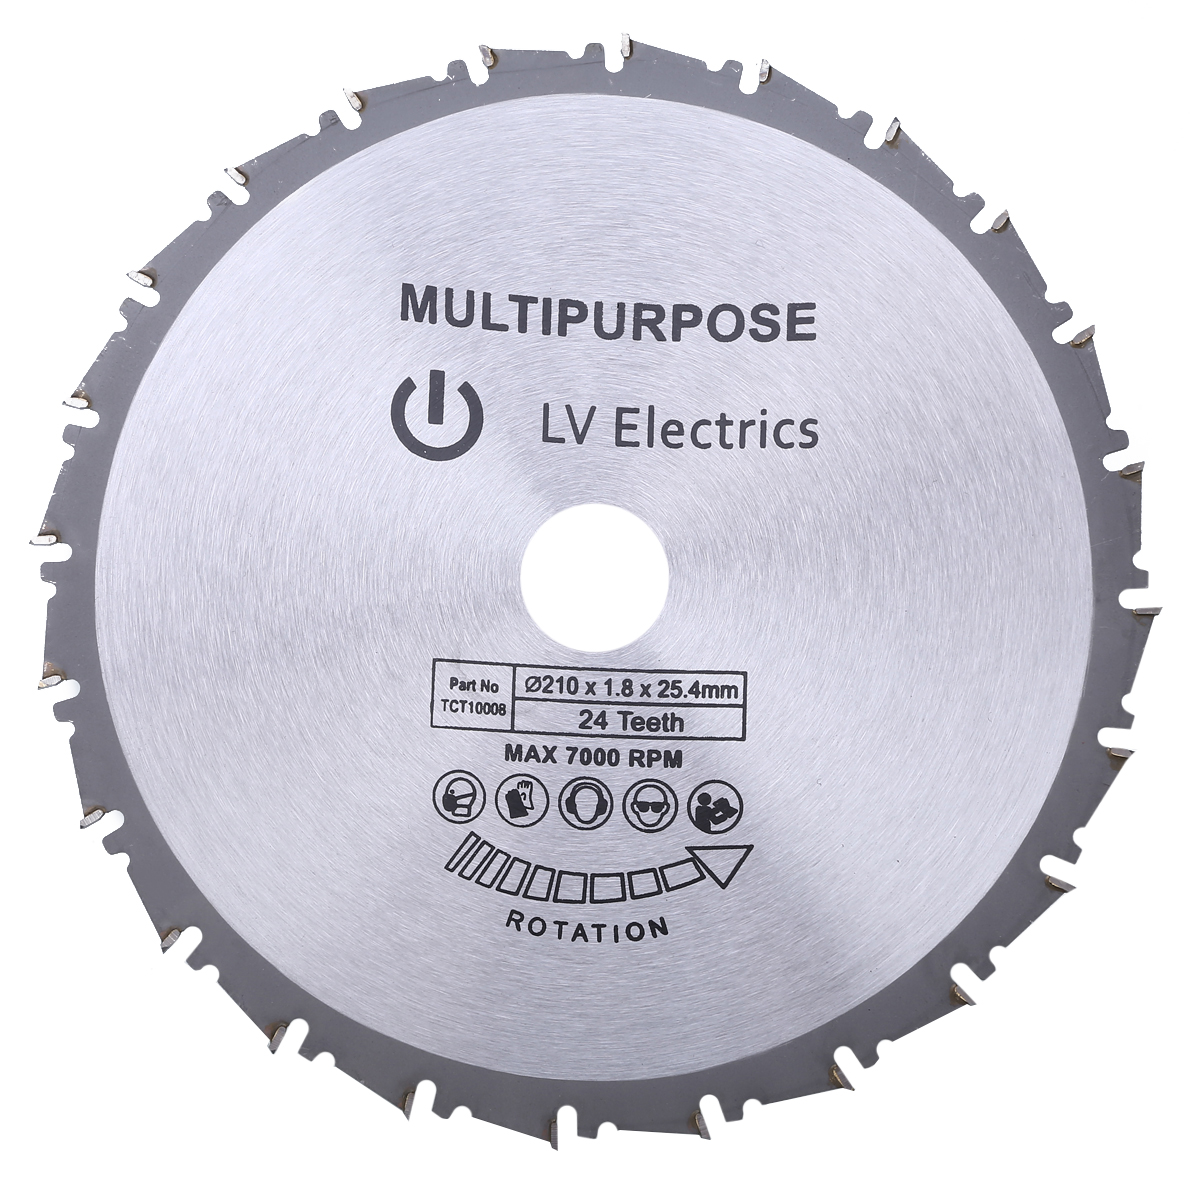 New Arrival 210mm Circular Saw Blade Disc Wood Metal Saw Blade Mayitr For Rage Rage4 RageB 25.4mm Bore Evolution 24T